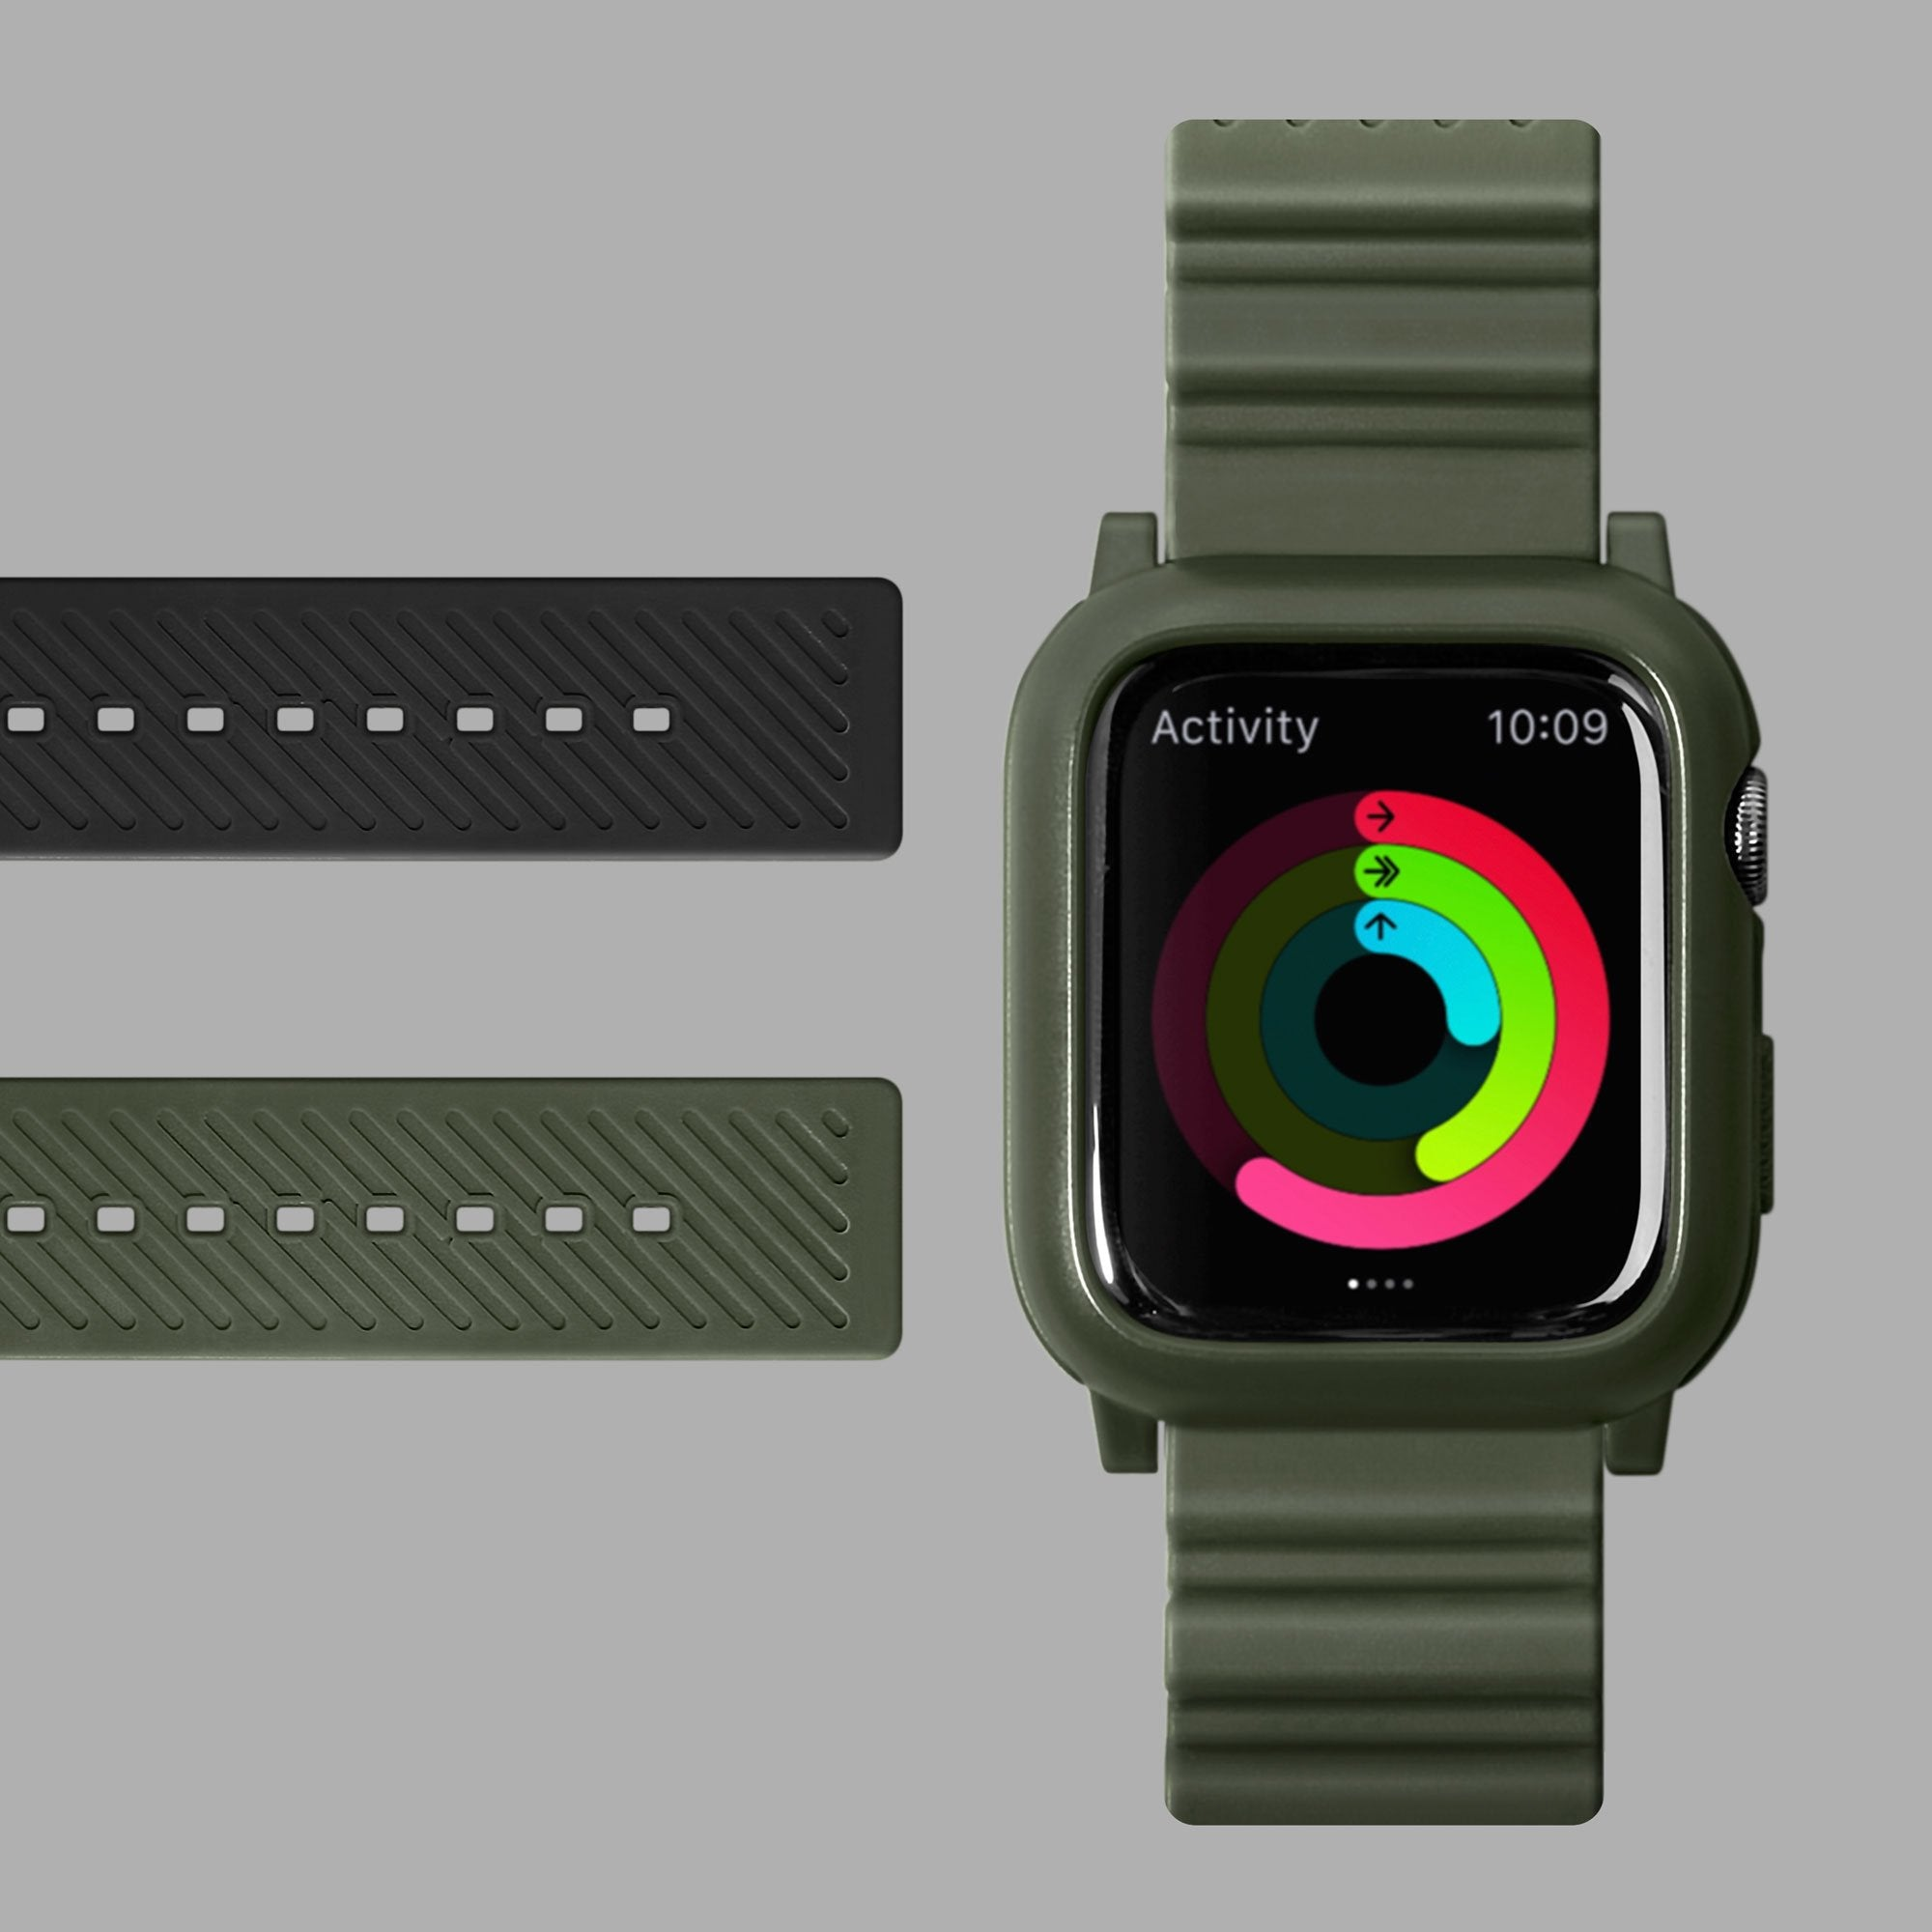 AW IMPKT Watch Strap for Apple Watch Series 1/2/3/4/5 - LAUT Japan